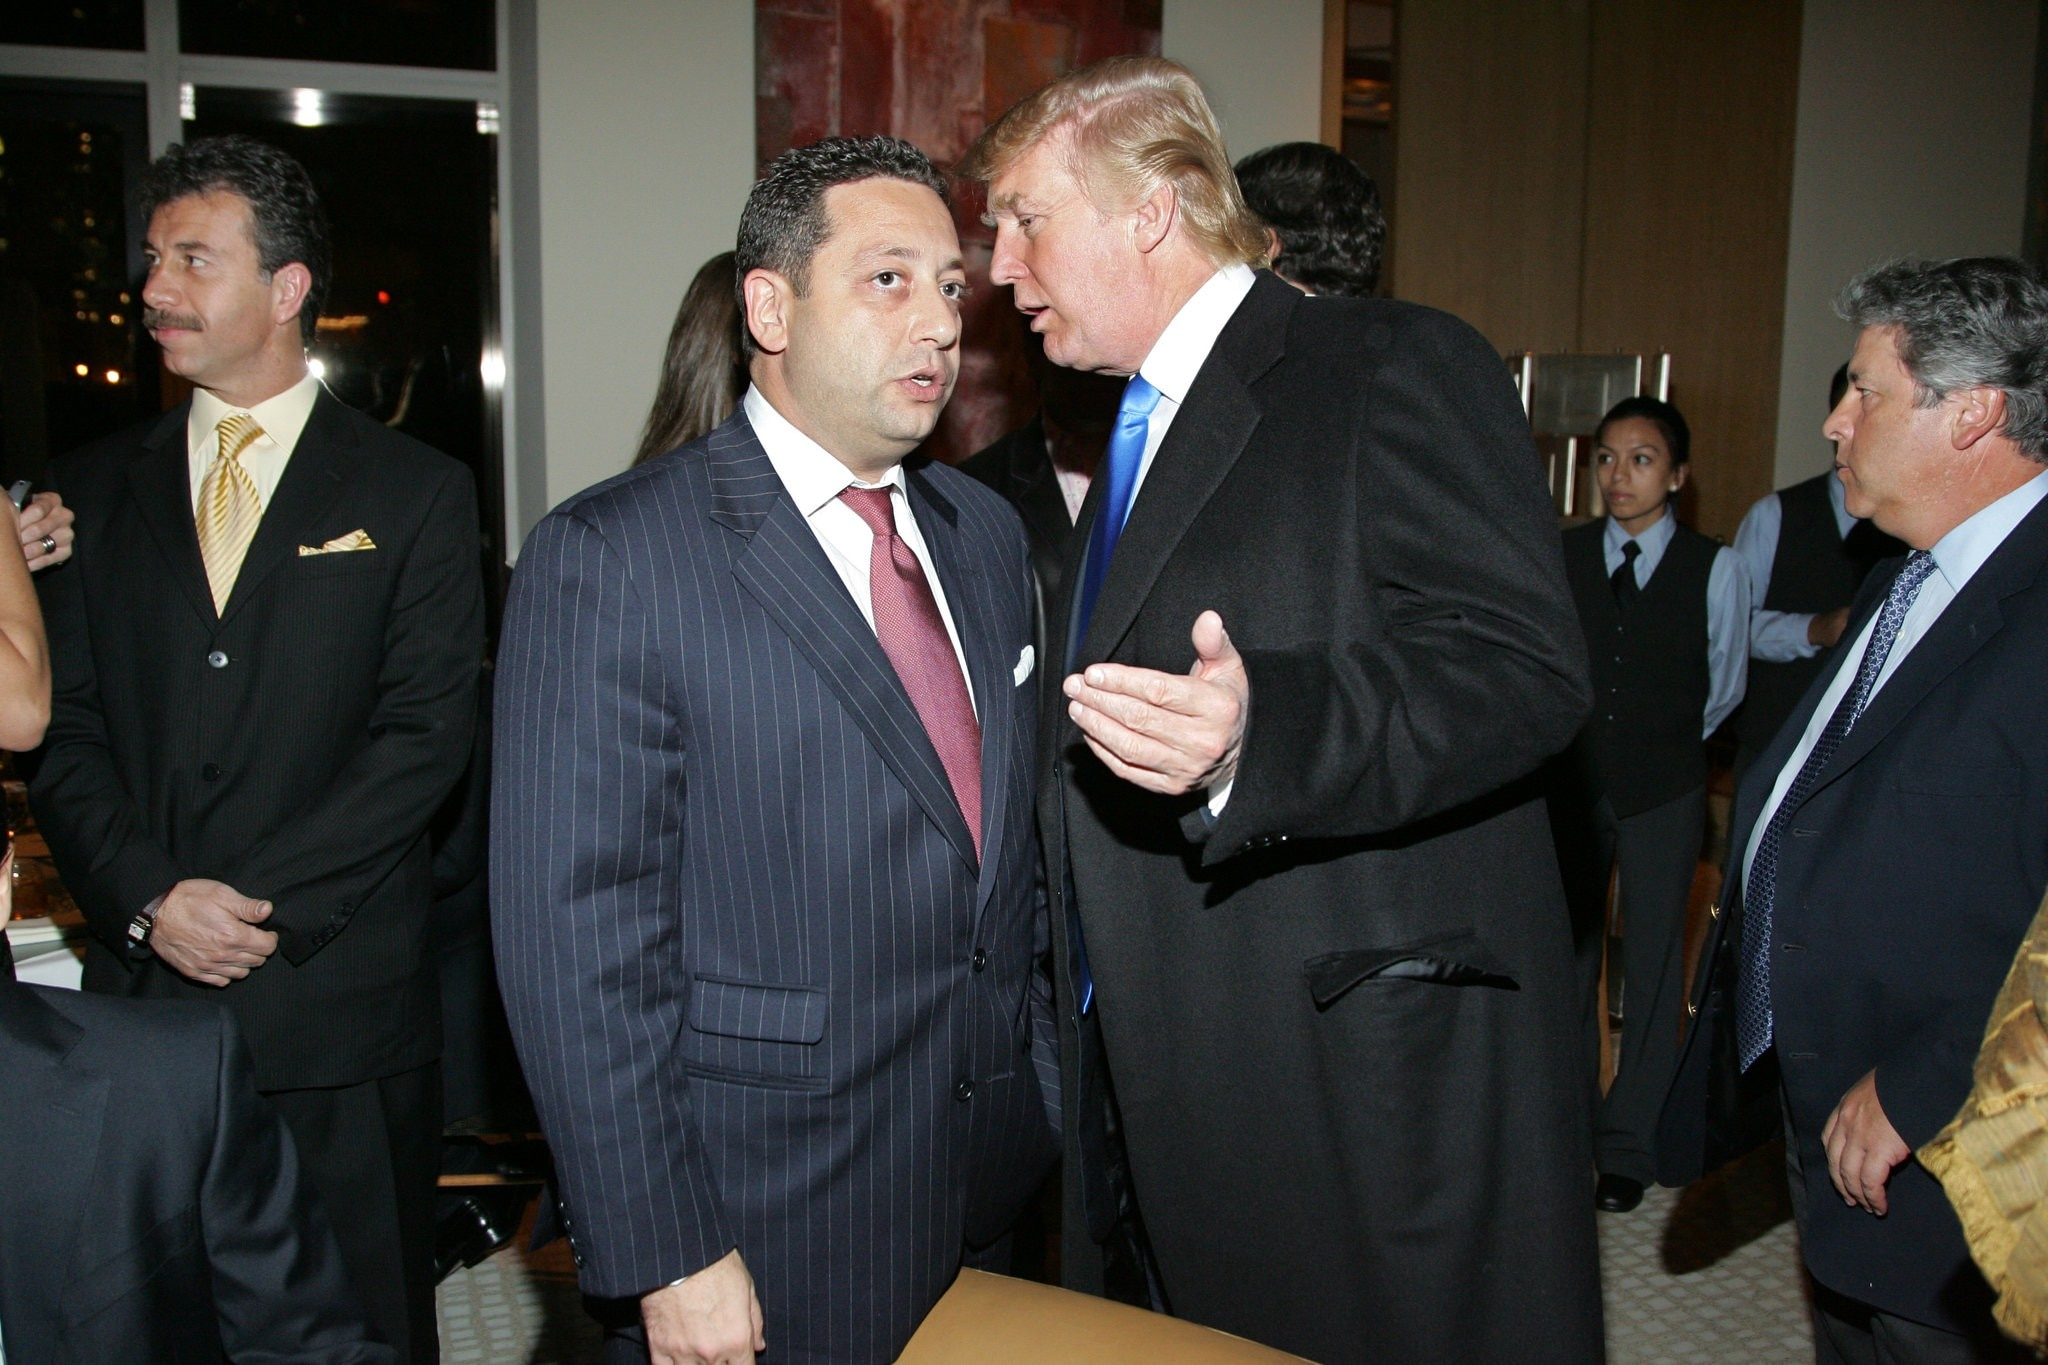 Felix Sater, a longtime business associate of President Trump's, drew on deep Russian contacts to pursue a real estate deal during the 2016 campaign.